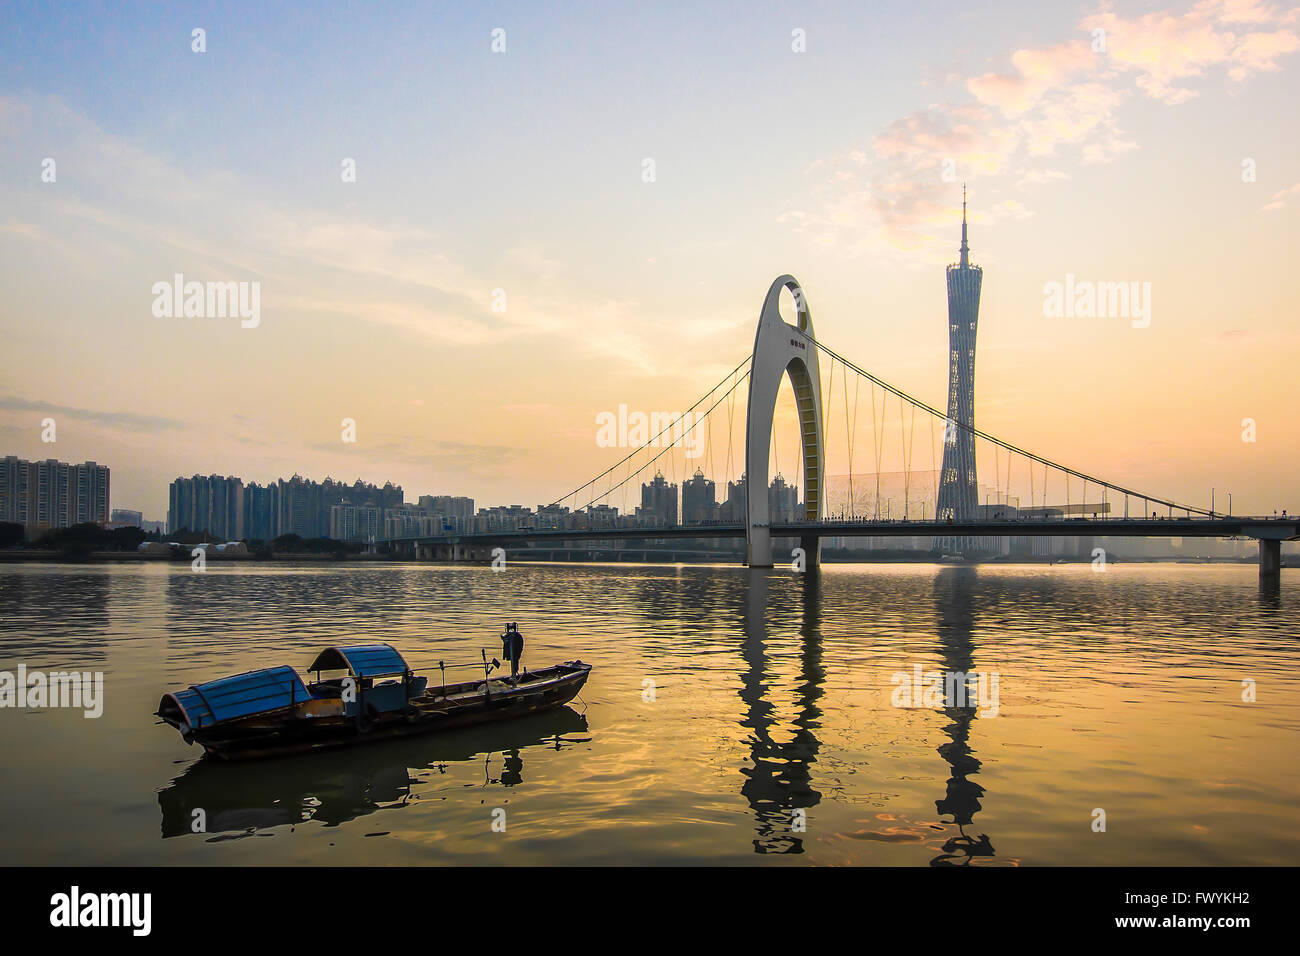 The evening of pearl river boats on the Liede Bridge - Stock Image